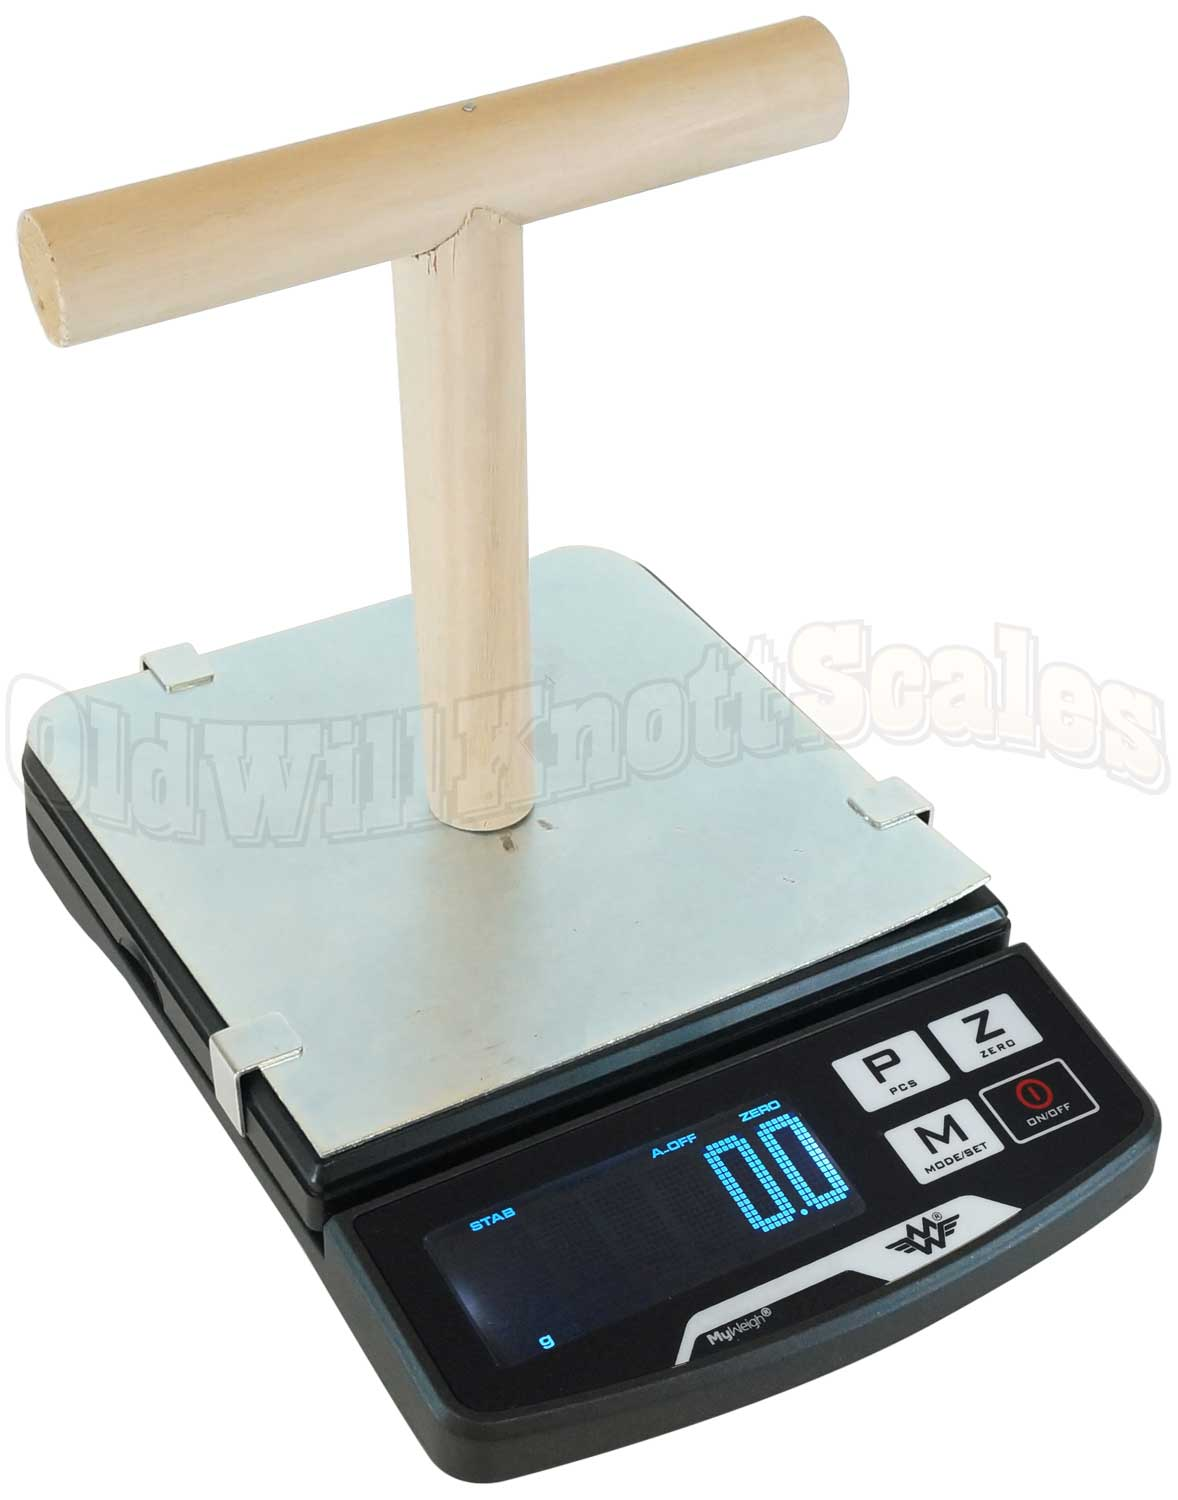 My Weigh Ibalance I1200 Digital Bird Scale With Square And